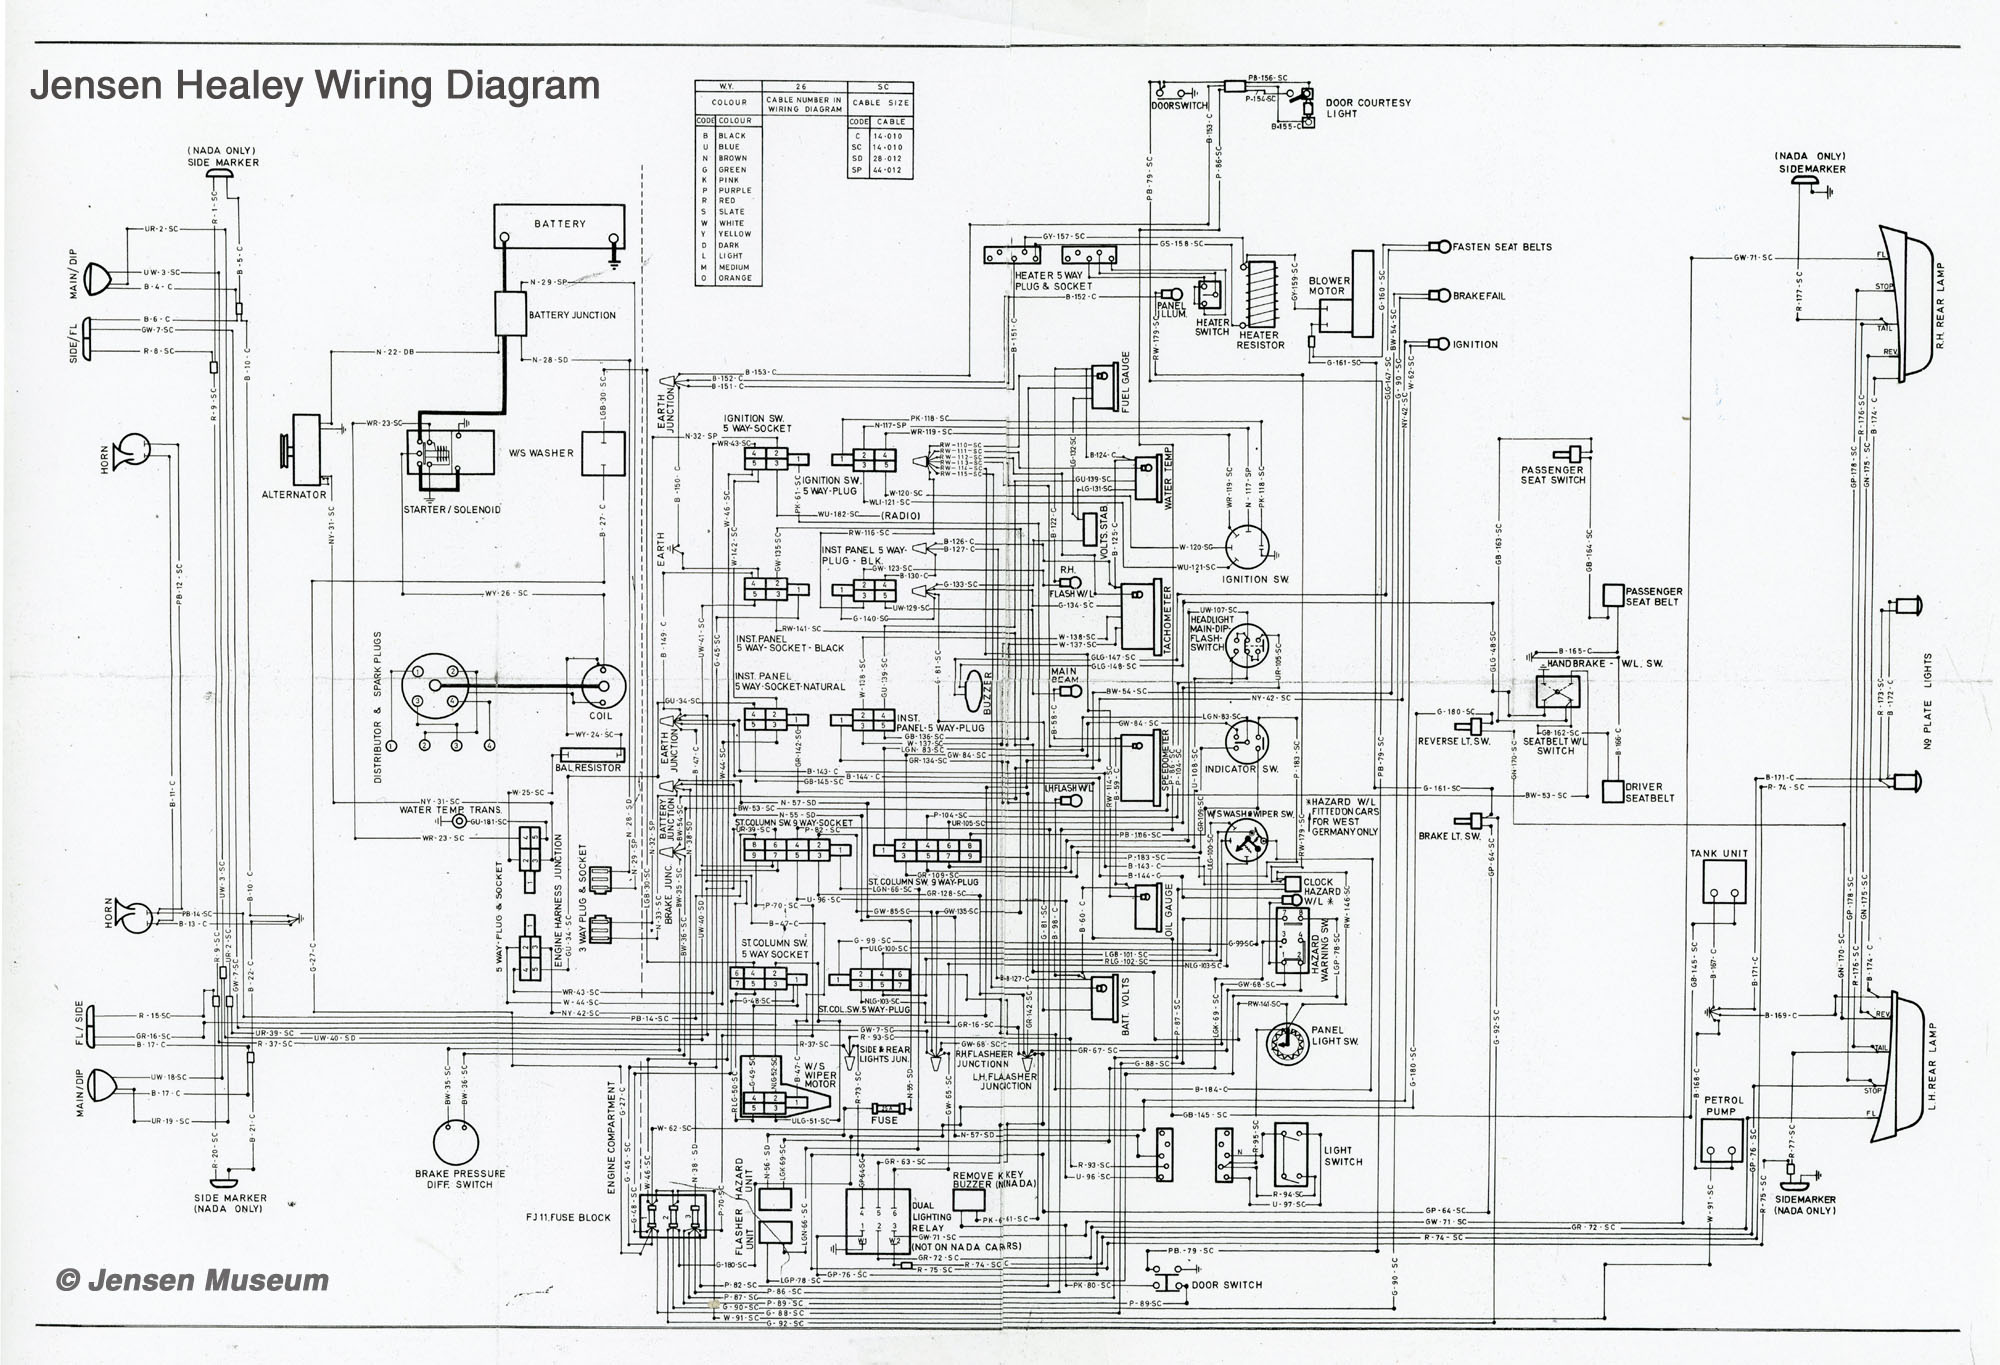 1975 Jensen Healey Wiring Diagram AM General Wiring